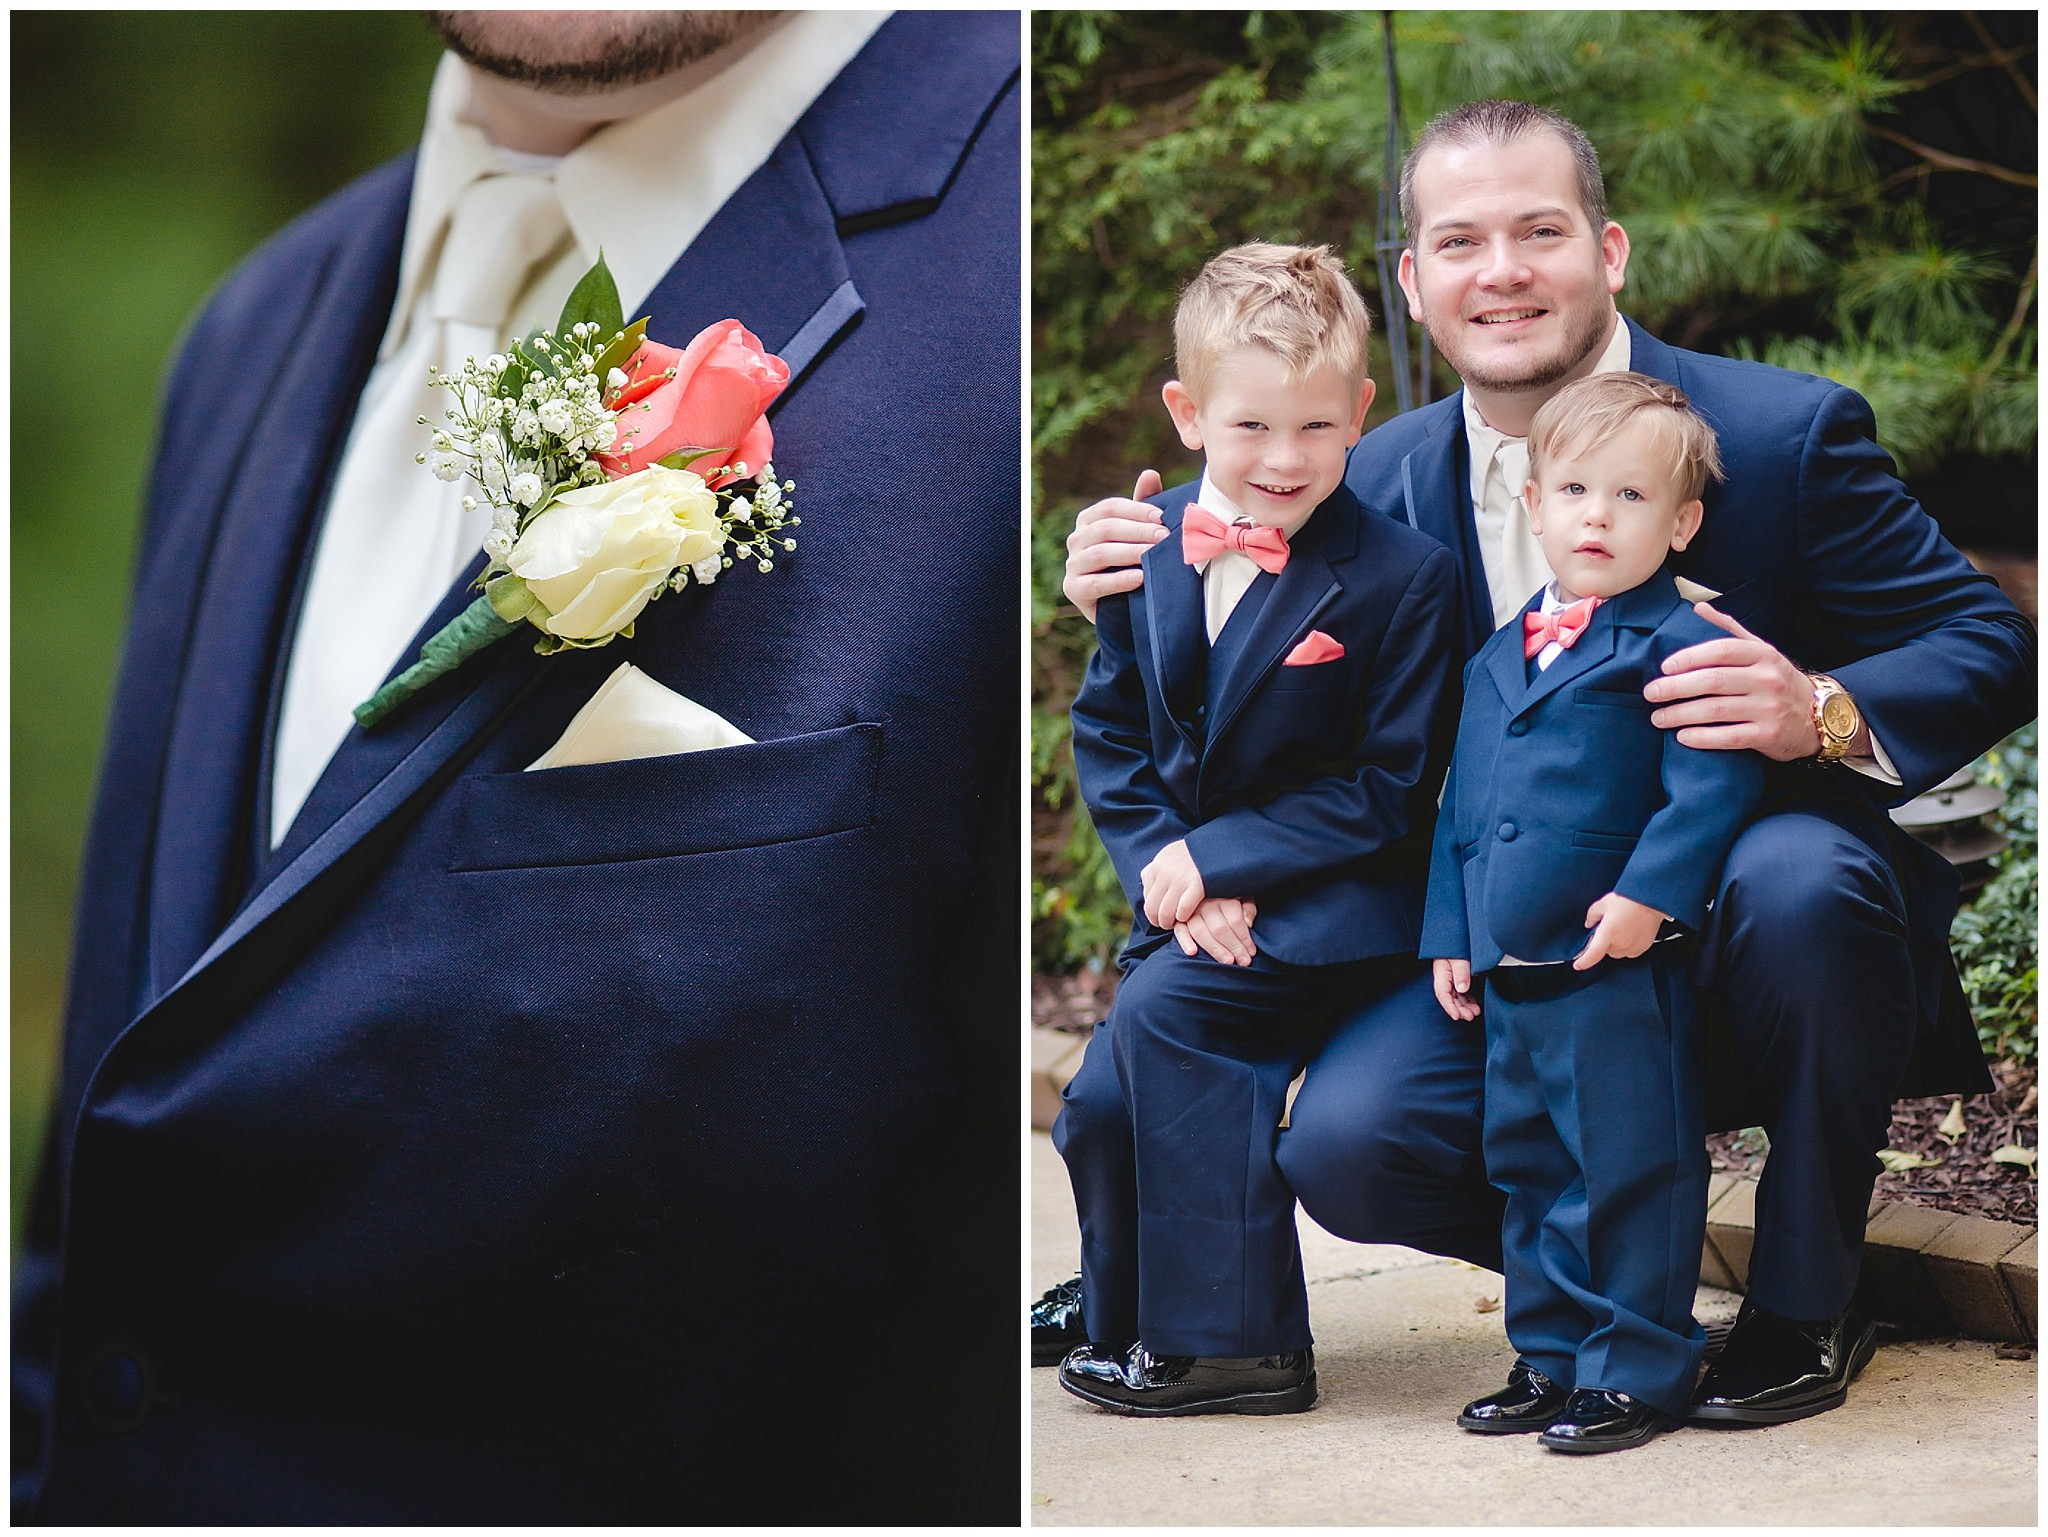 Groom poses with his ring bearers at the Pittsburgh Airport Marriott